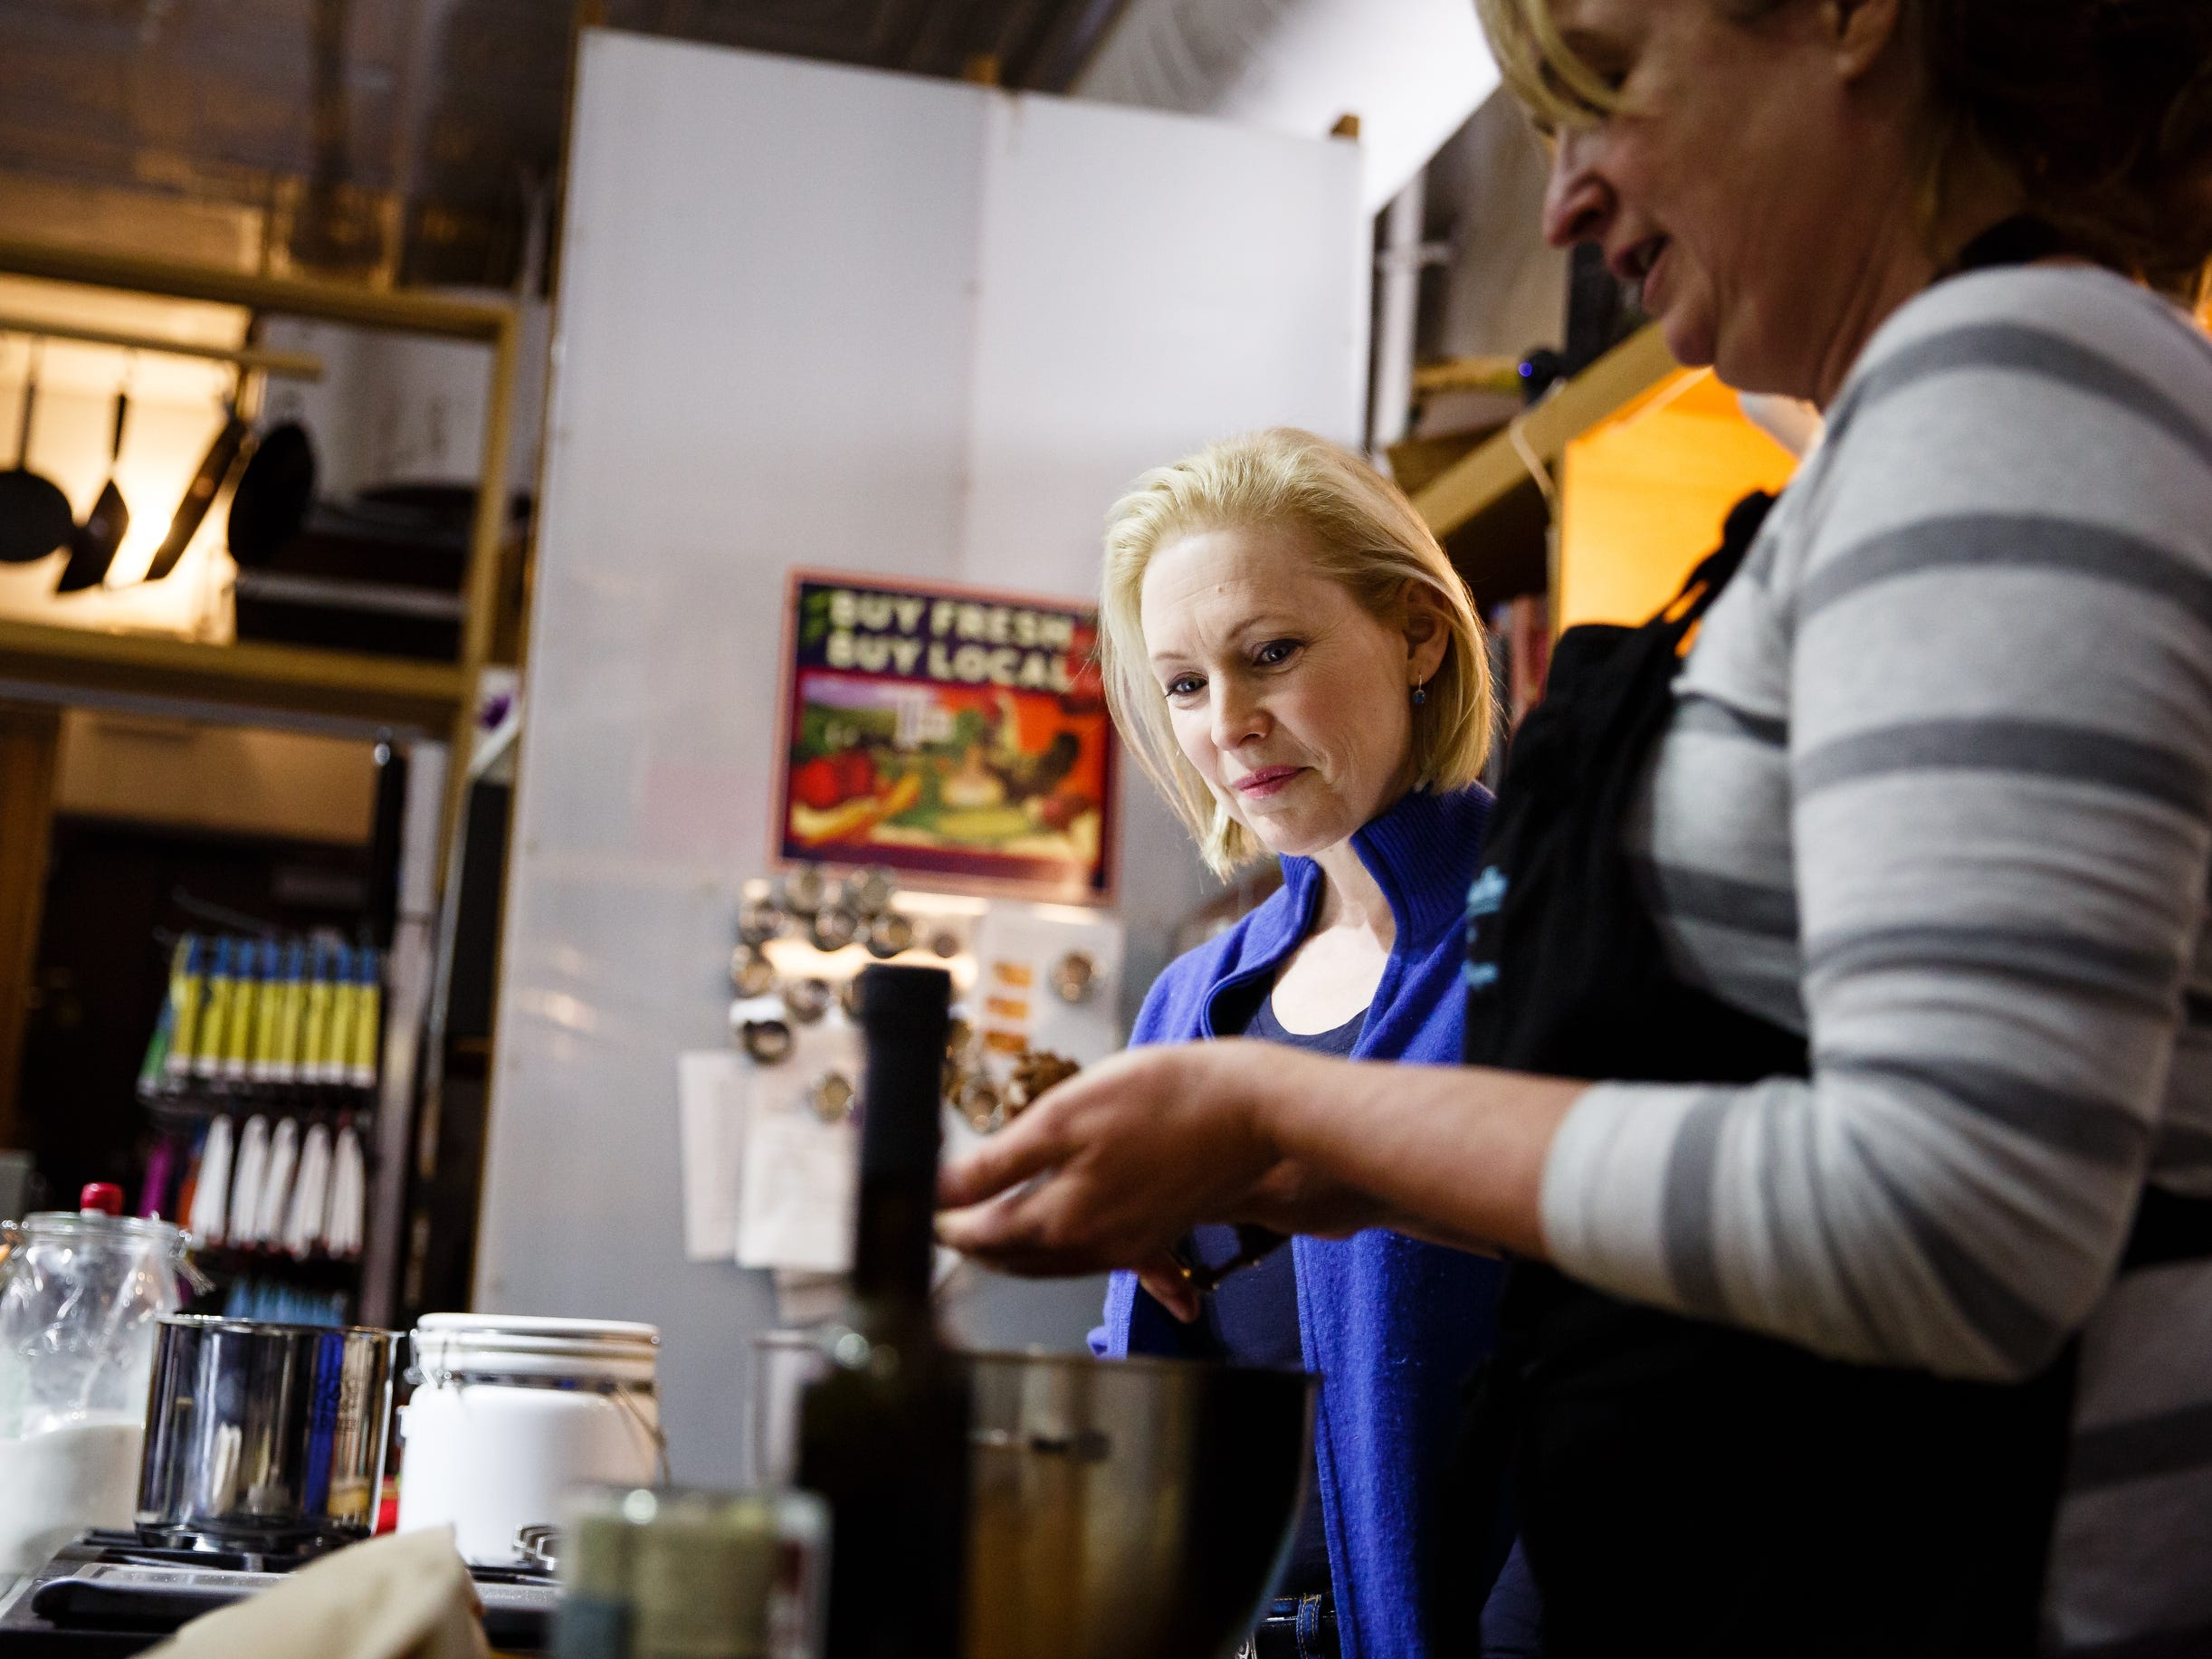 During a walking tour of the East Village, Sen. Kirsten Gillibrand of New York stops at Kitchen Collage and helps Jill Means bake a batch of chocolate cookies on Saturday, Jan. 19, 2019, in Des Moines.